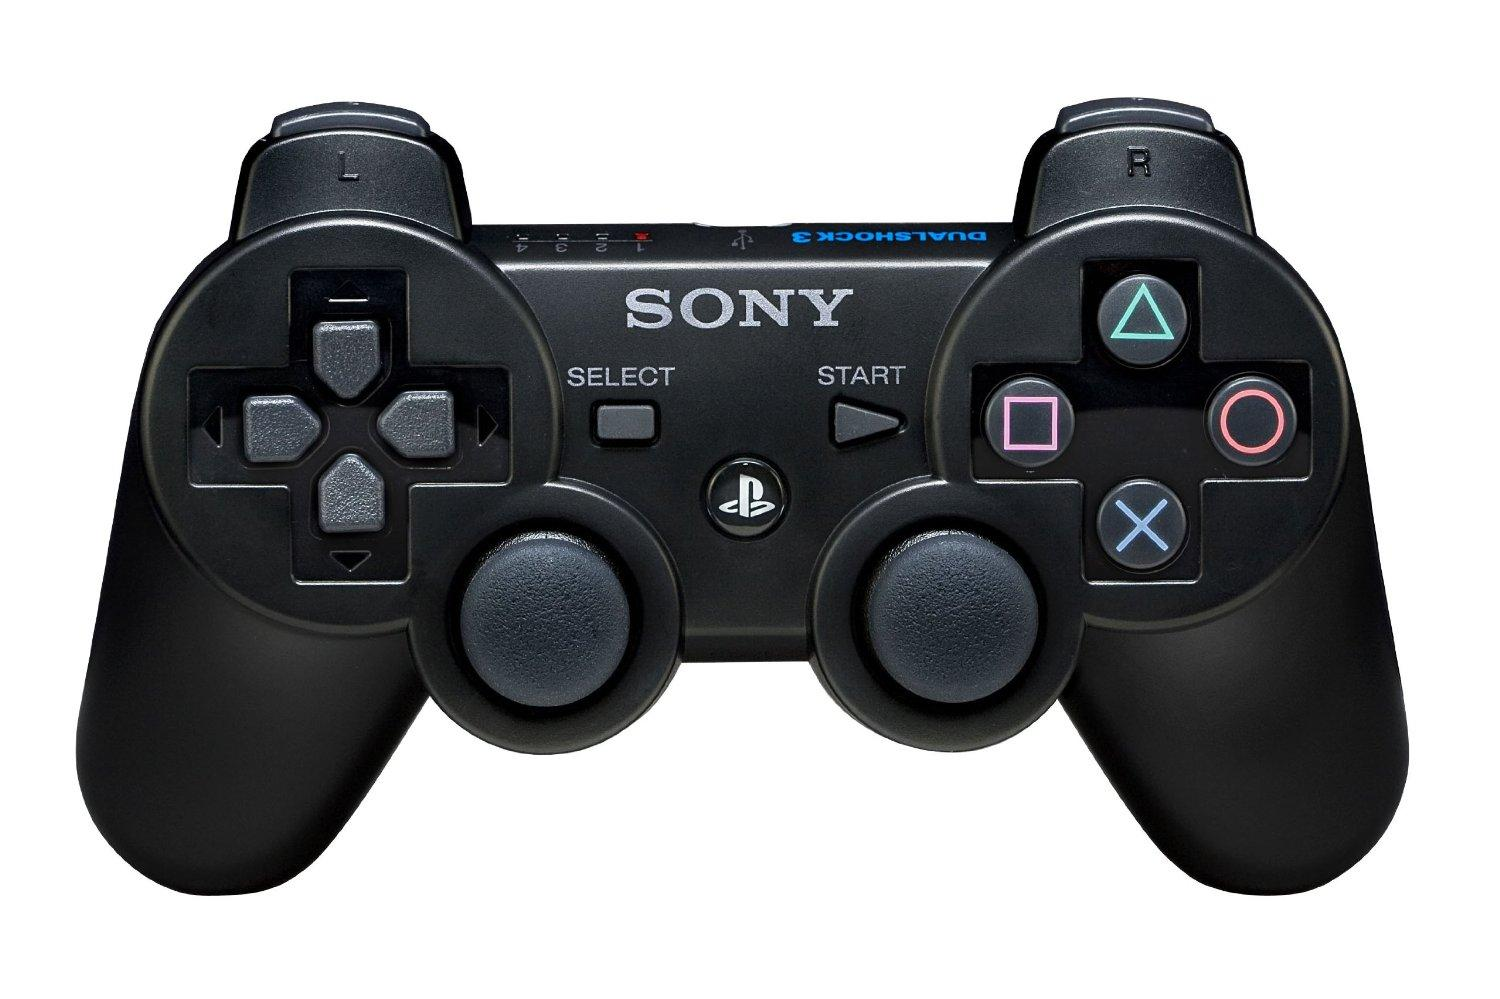 Figure 35 Playstation 2/3 design, ca. 2000.